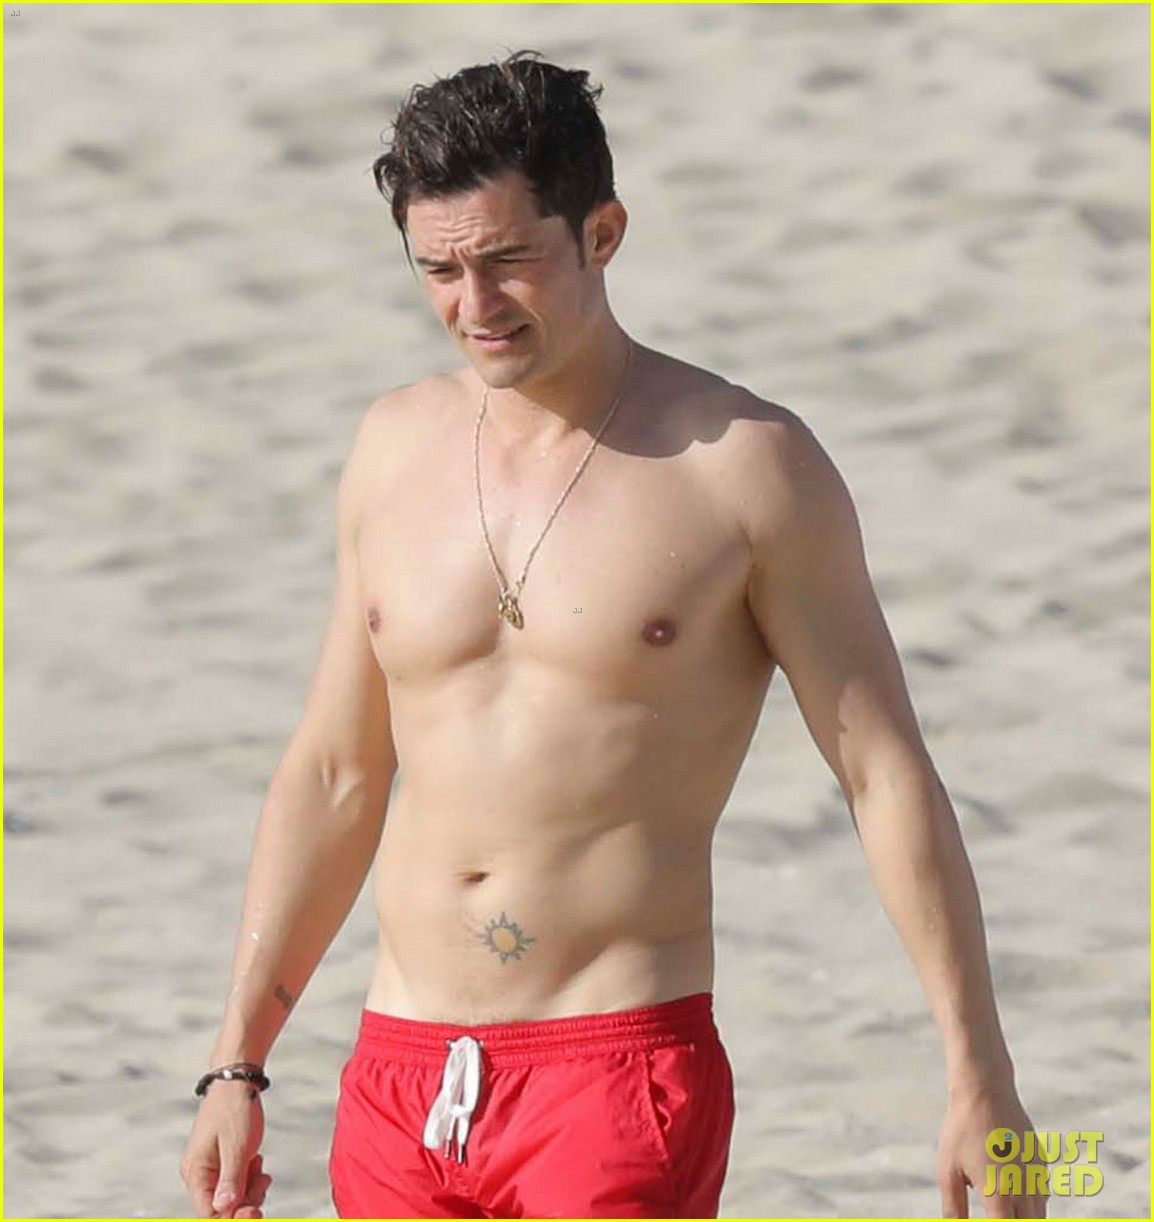 Decoding Orlando Blooms Naked Pictures: What Was He Doing